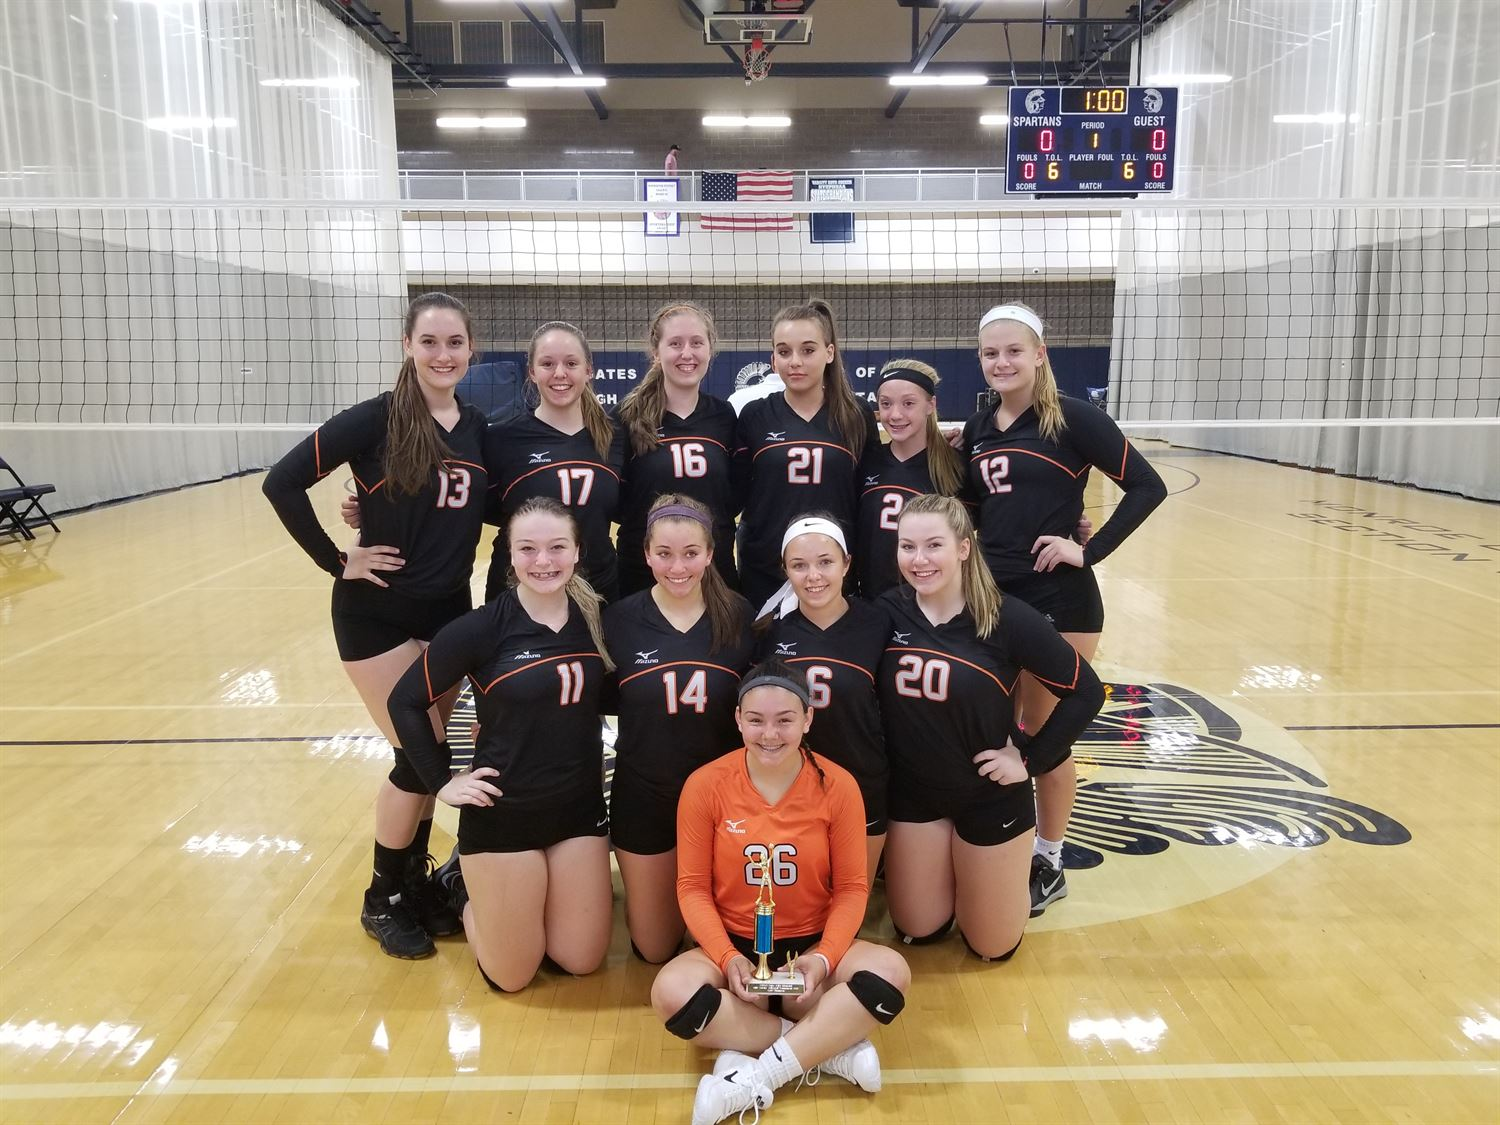 Churchville-Chili High School - Girls Varsity Volleyball